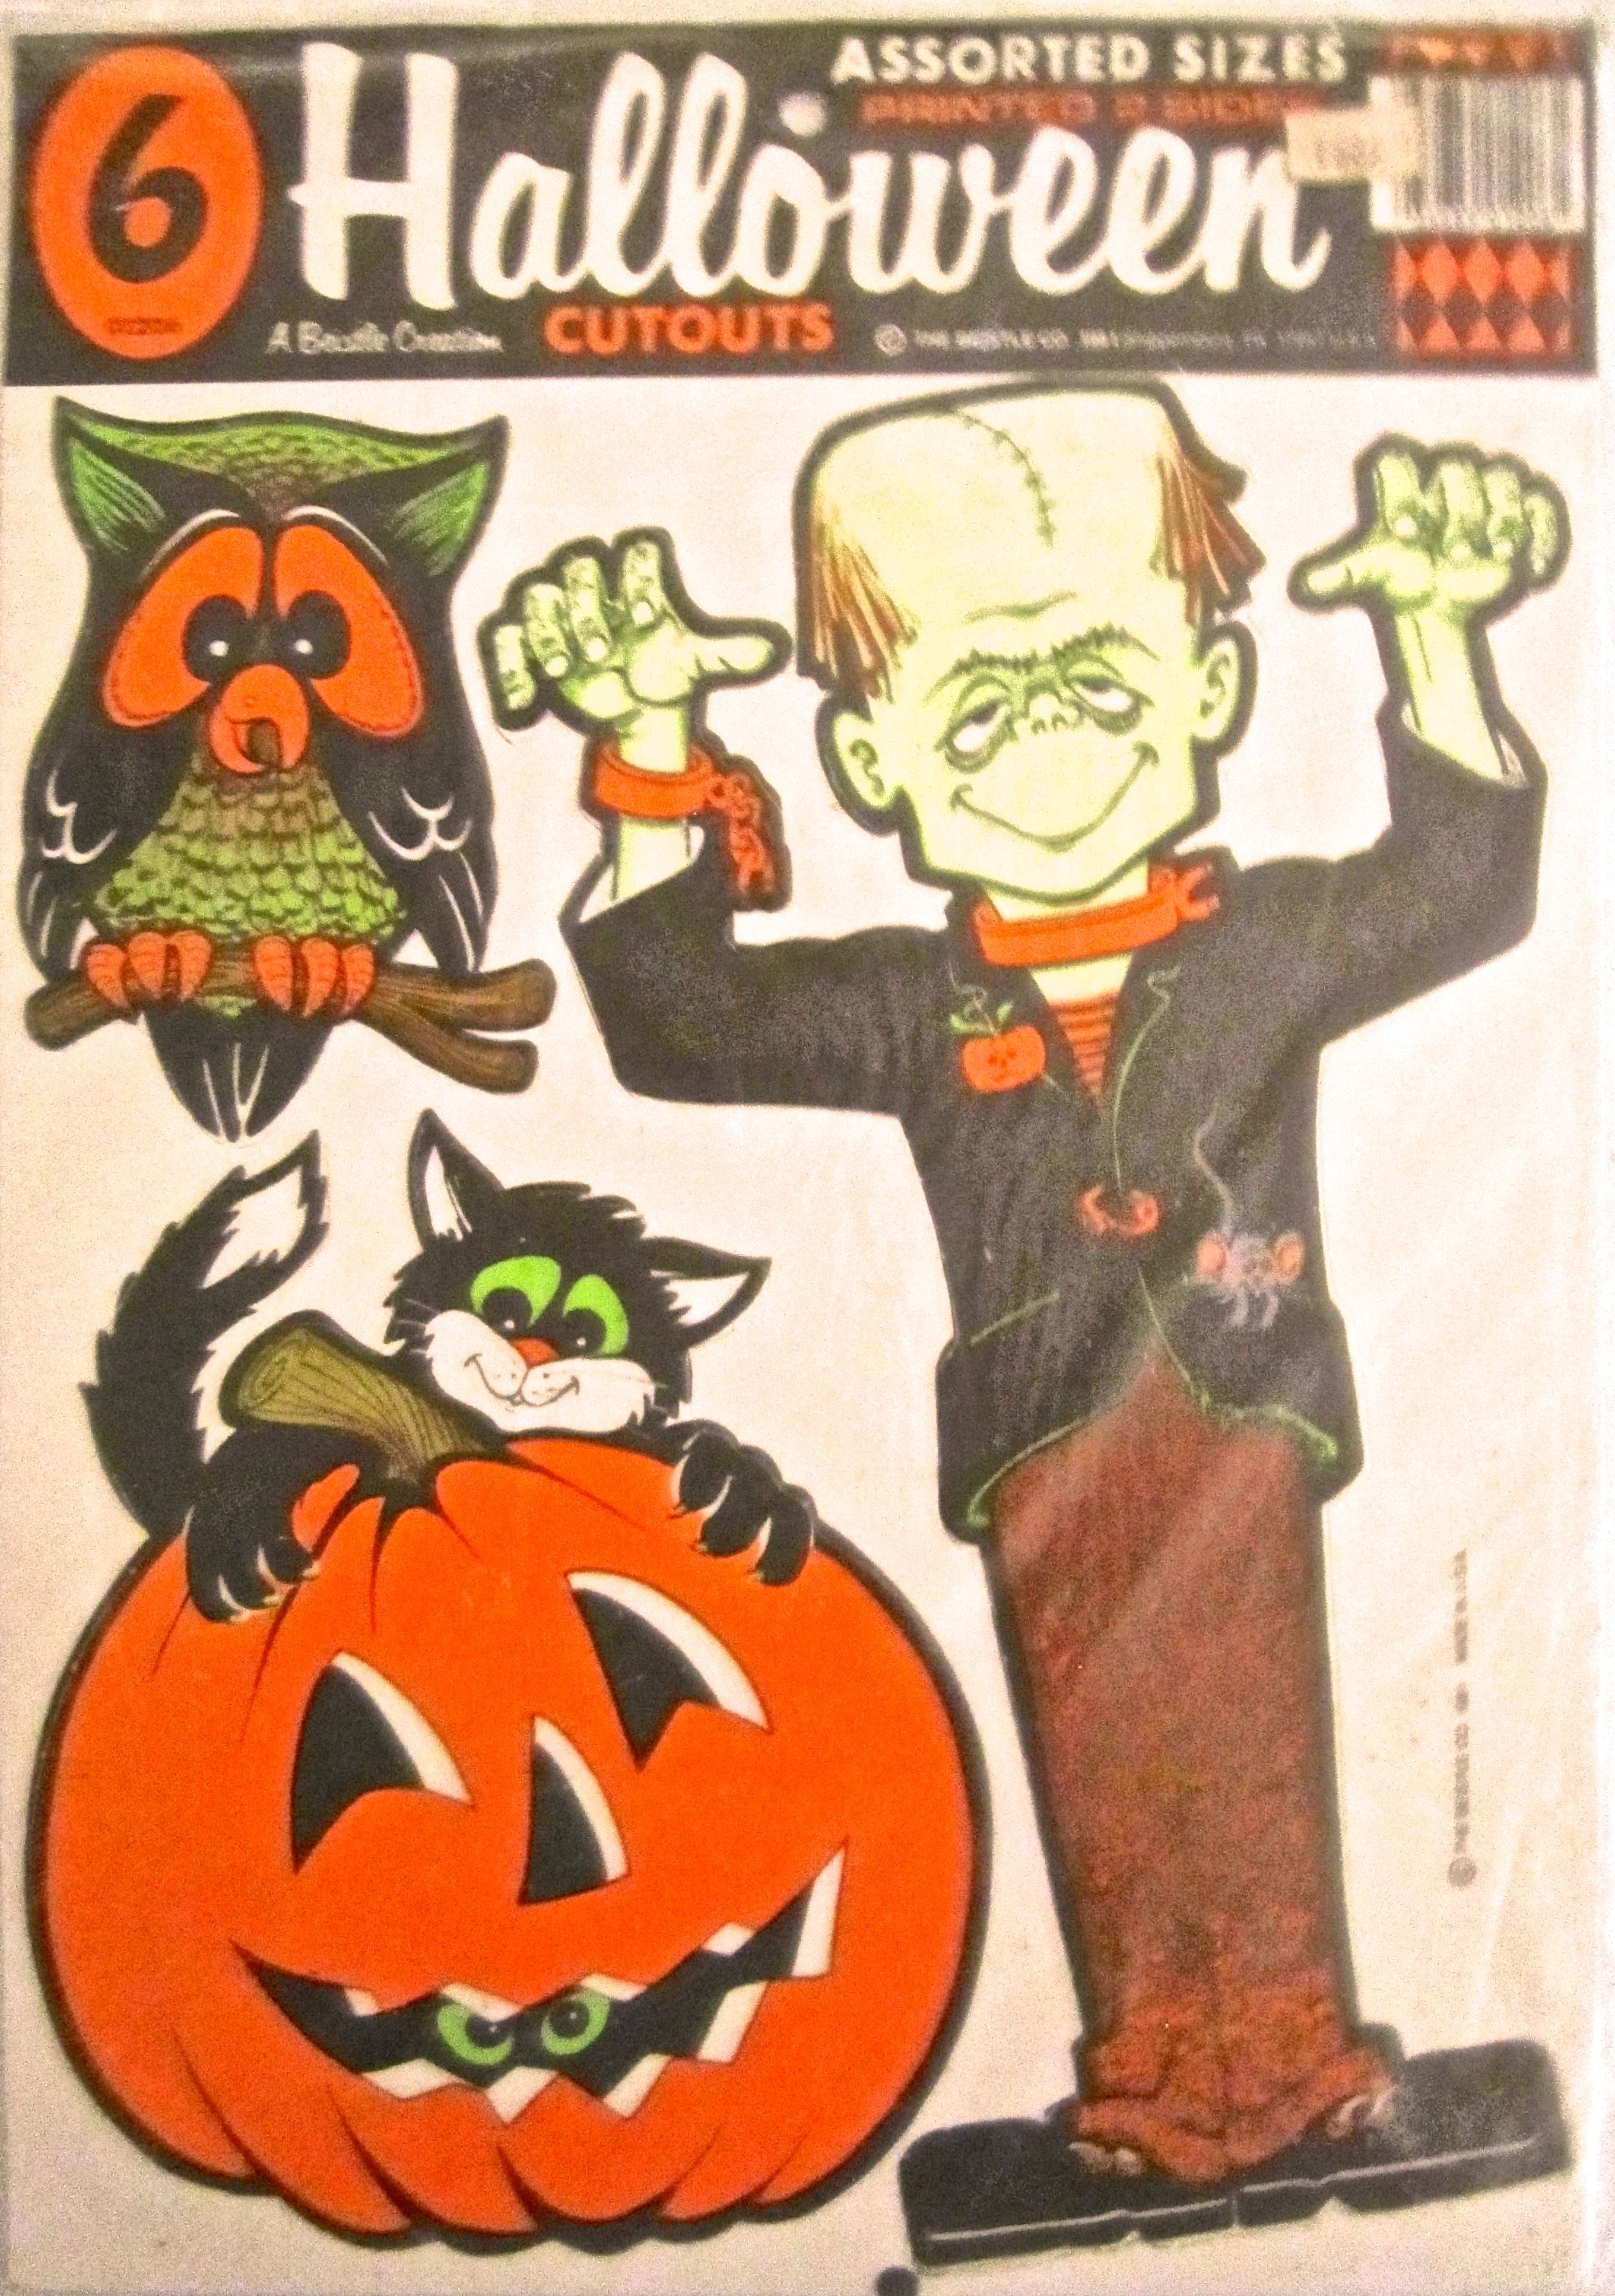 Beistle 1982 Halloween Cutouts I Have Not Seen Them Mint Again I M Glad I Bought This One When Retro Halloween Decorations Retro Halloween Vintage Halloween